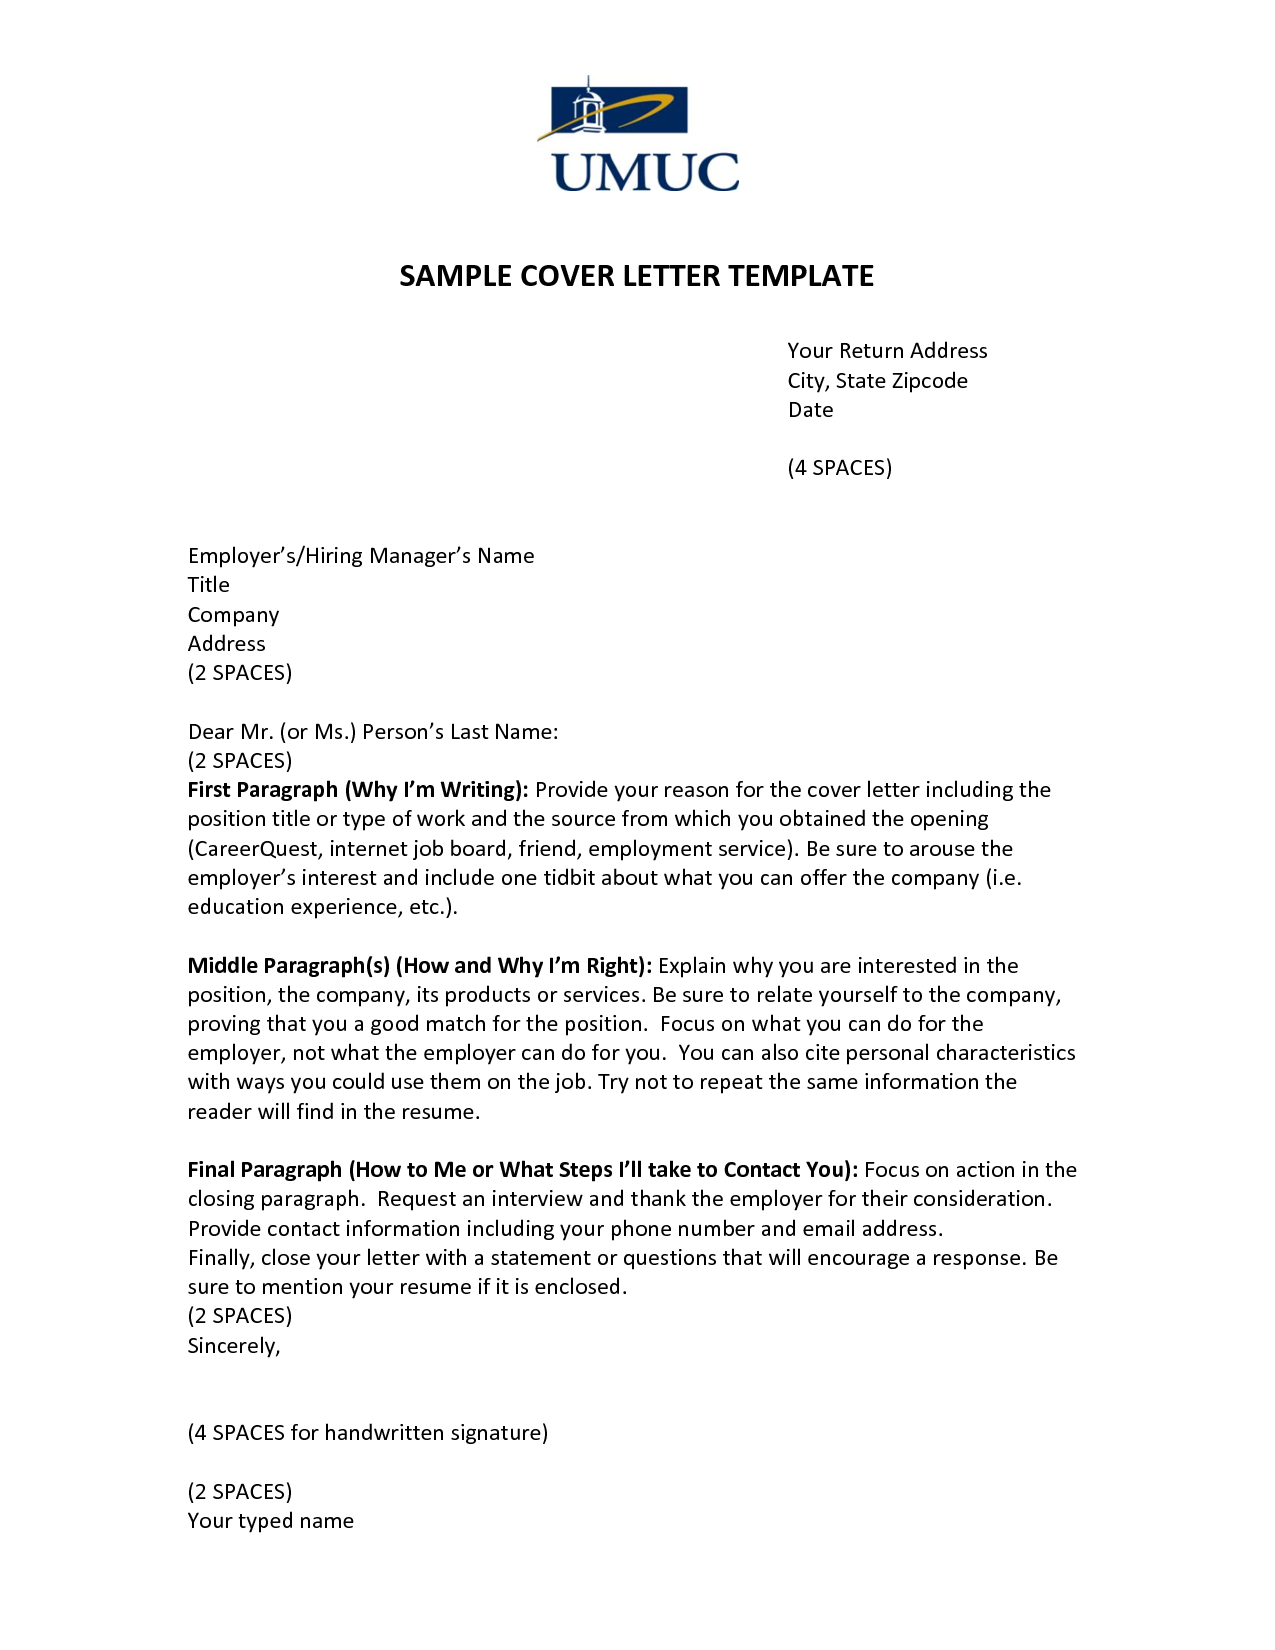 Sample cover letter template umucover letter template application sample cover letter template umucover letter template application letter sample madrichimfo Choice Image